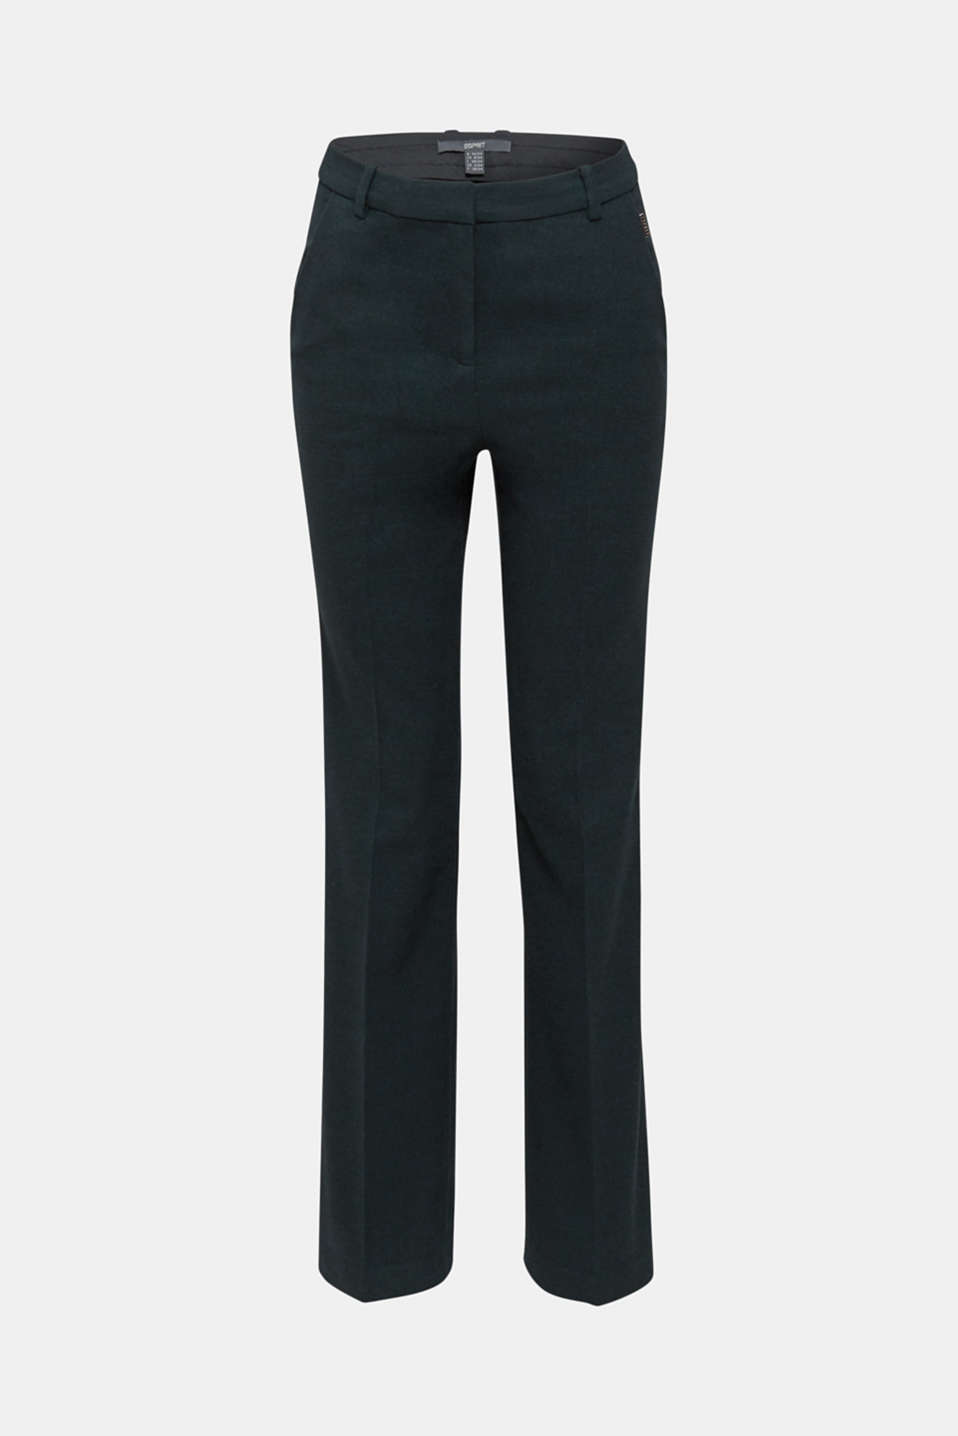 Flannel trousers with stretch for comfort, DARK TEAL GREEN, detail image number 7